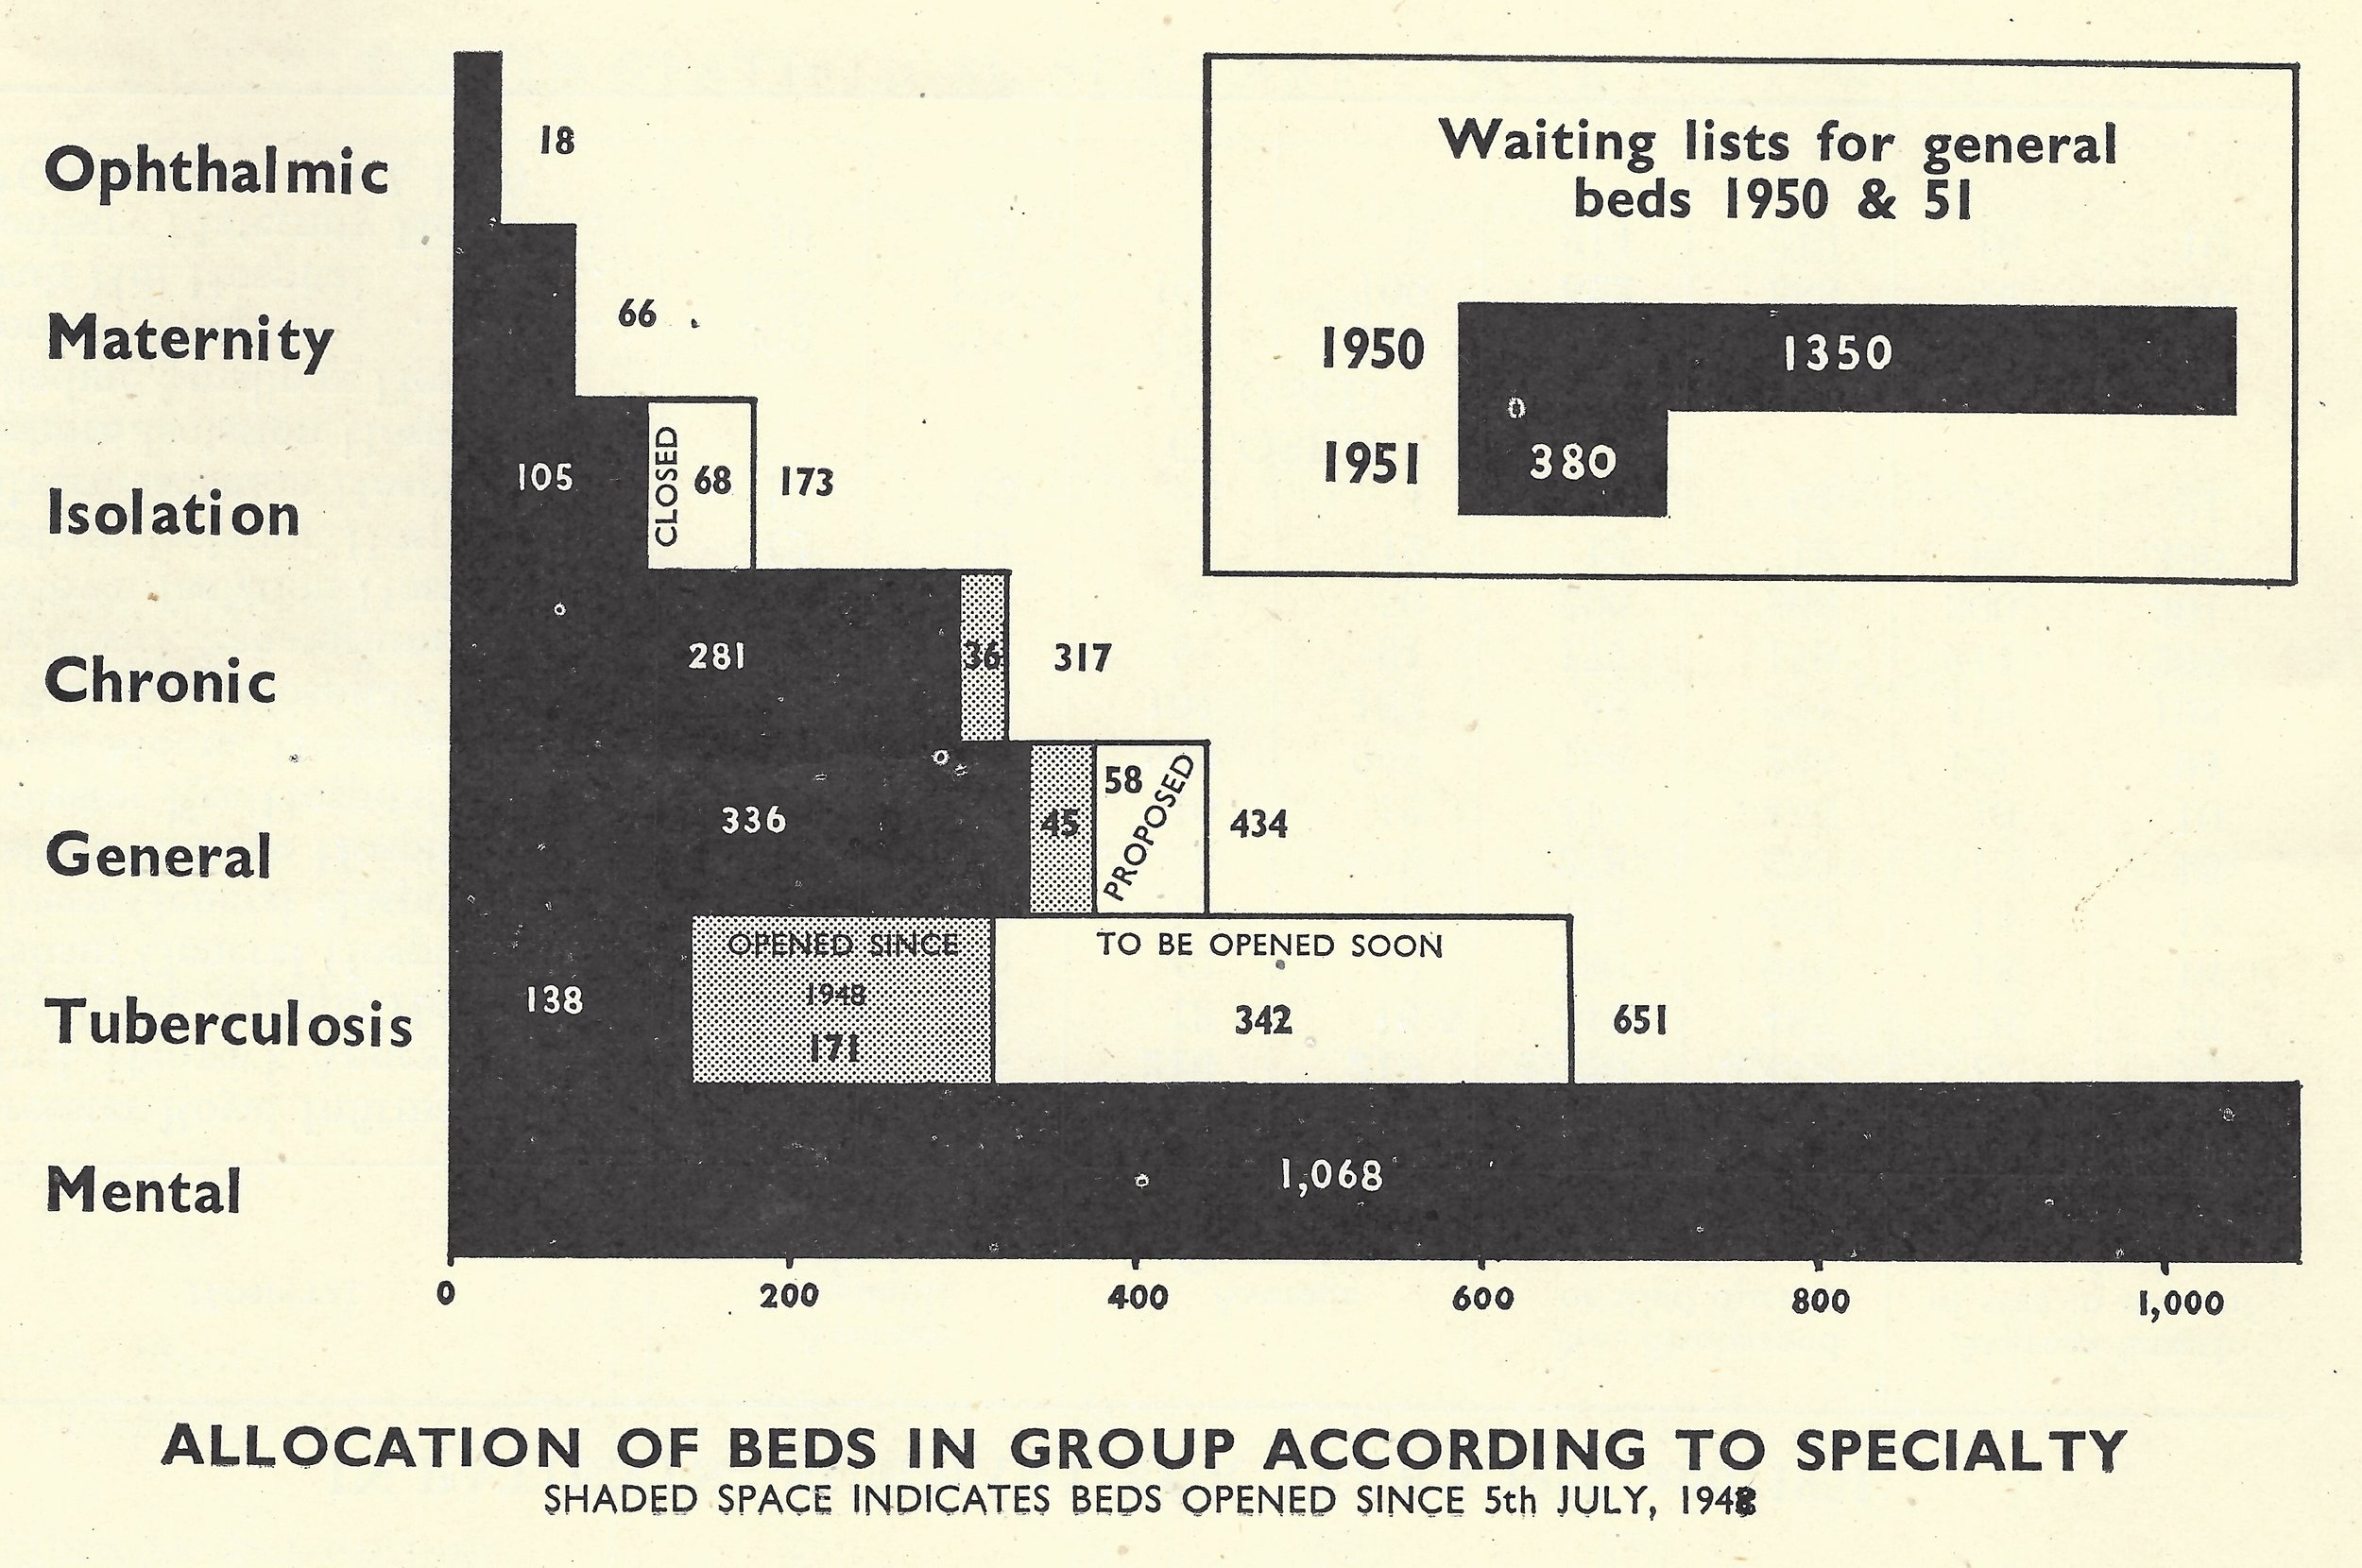 Allocation of beds according to specialty, 1950 & 1951.©Charles Hastings Education Centre